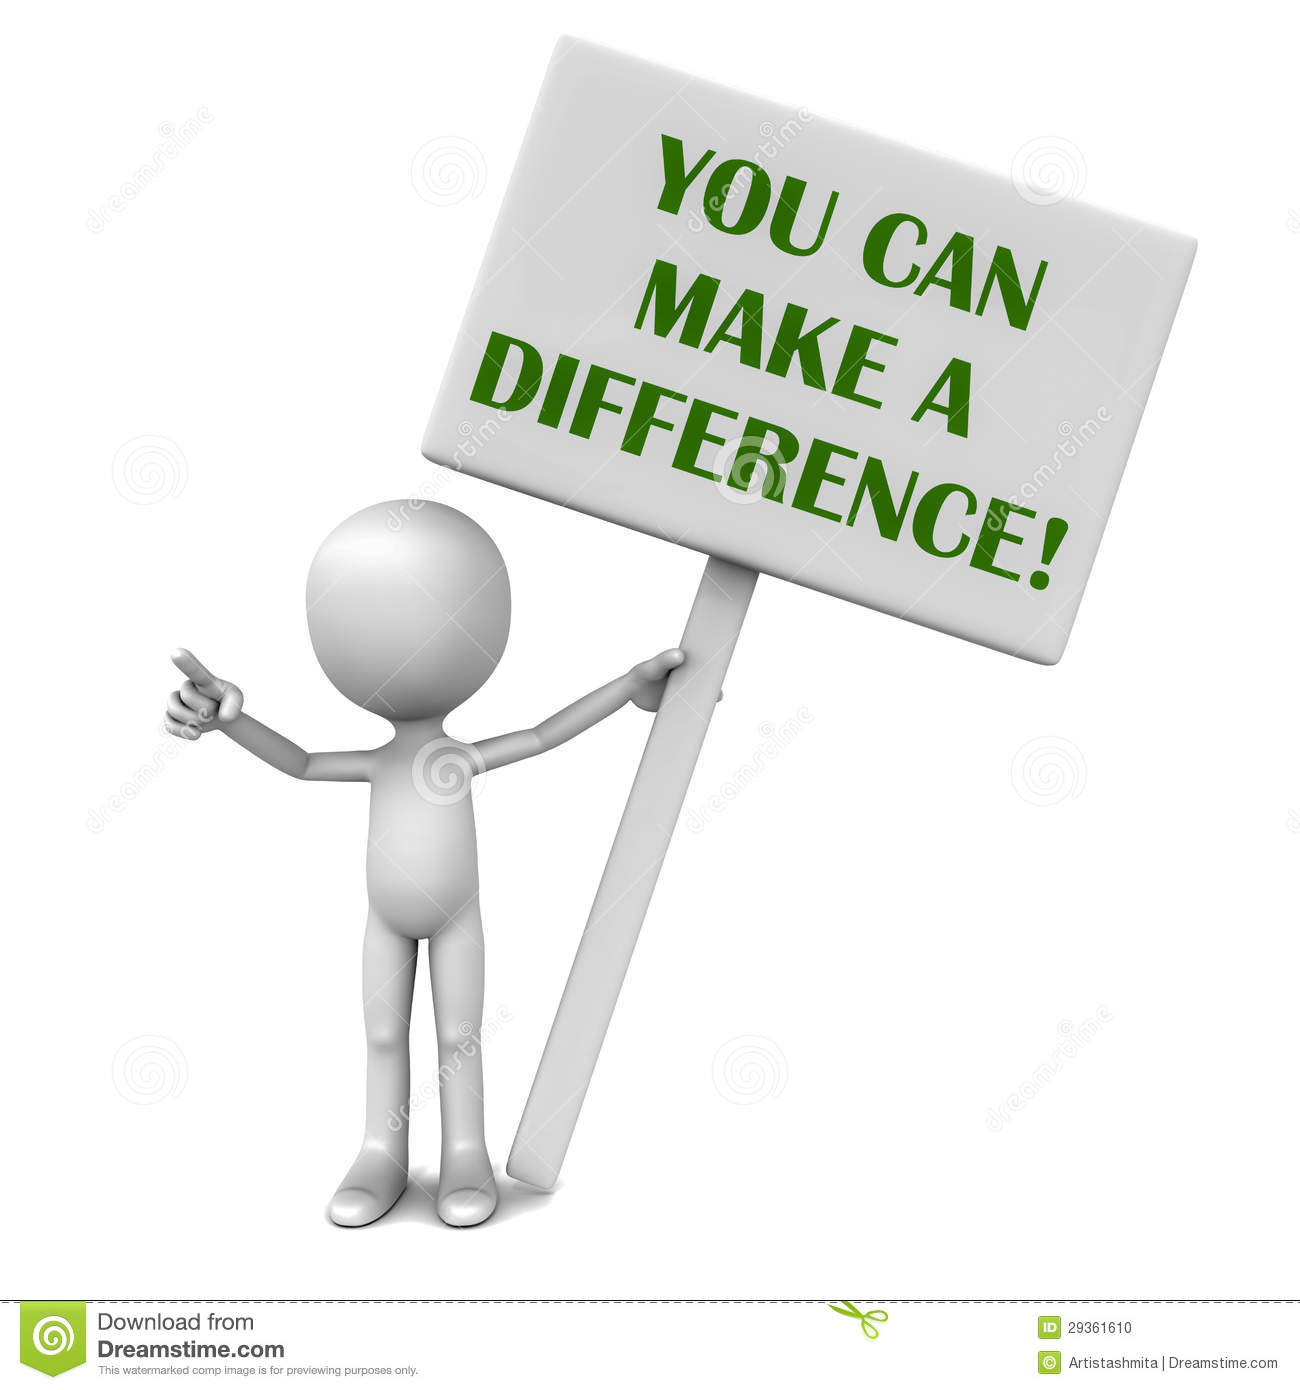 Making a difference clipart » Clipart Station.